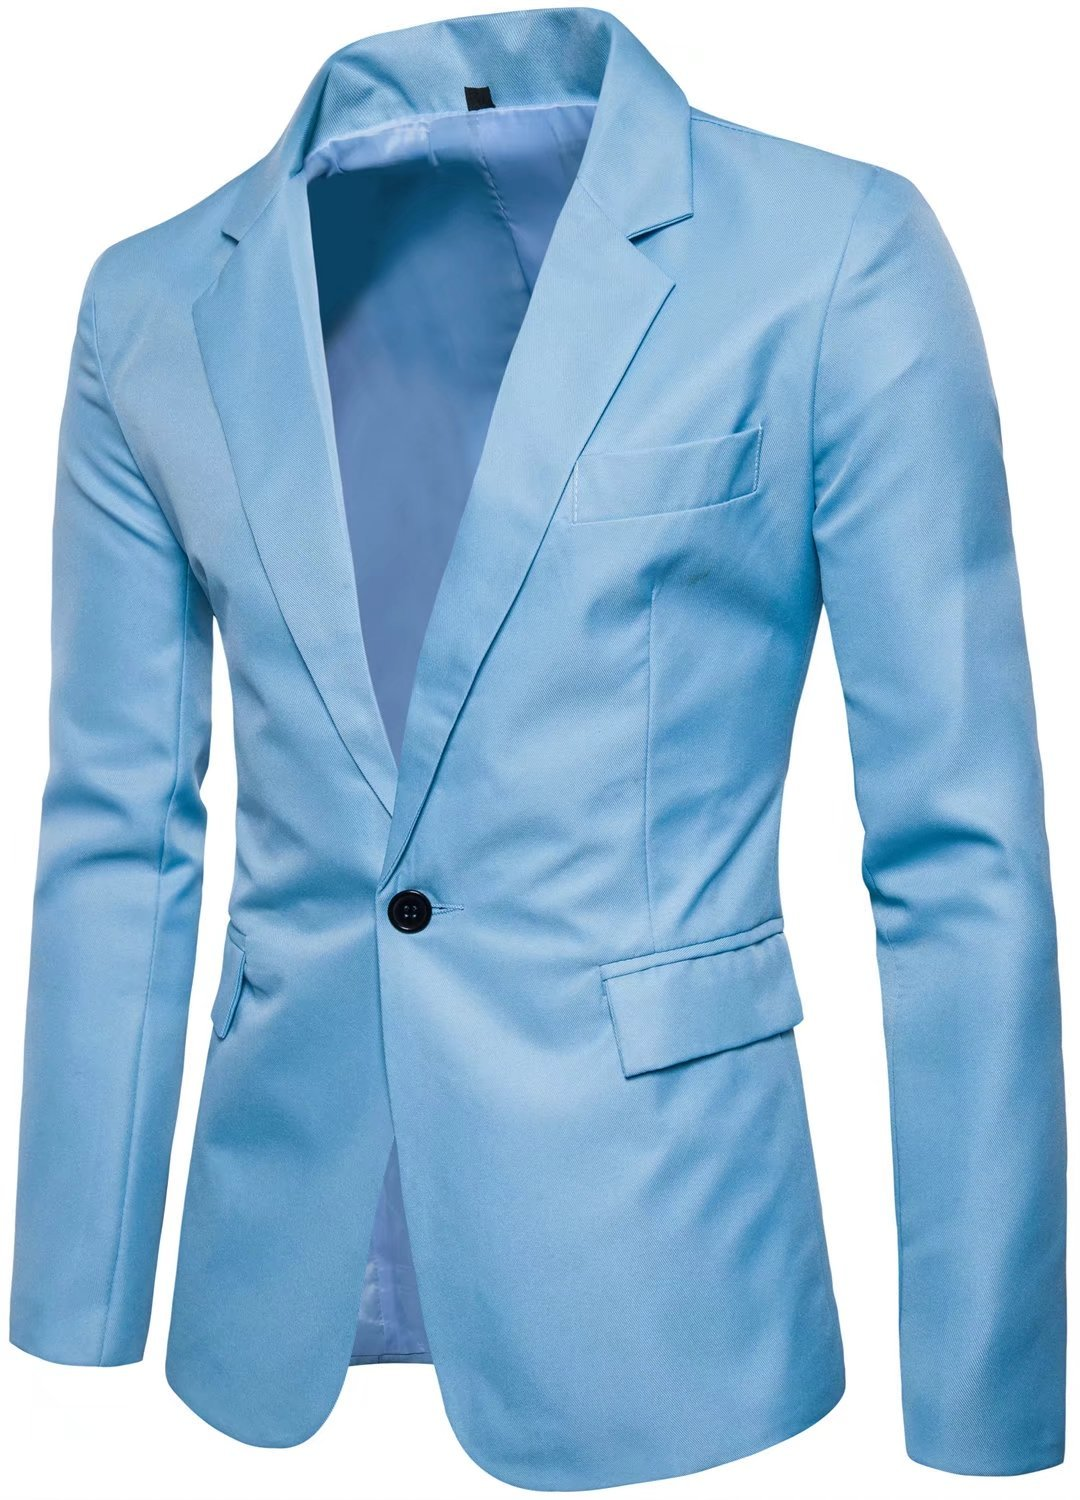 HENGAO Men's Long Sleeves Peak Lapel Collar One Button Slim Fit Sport Coat Blazer